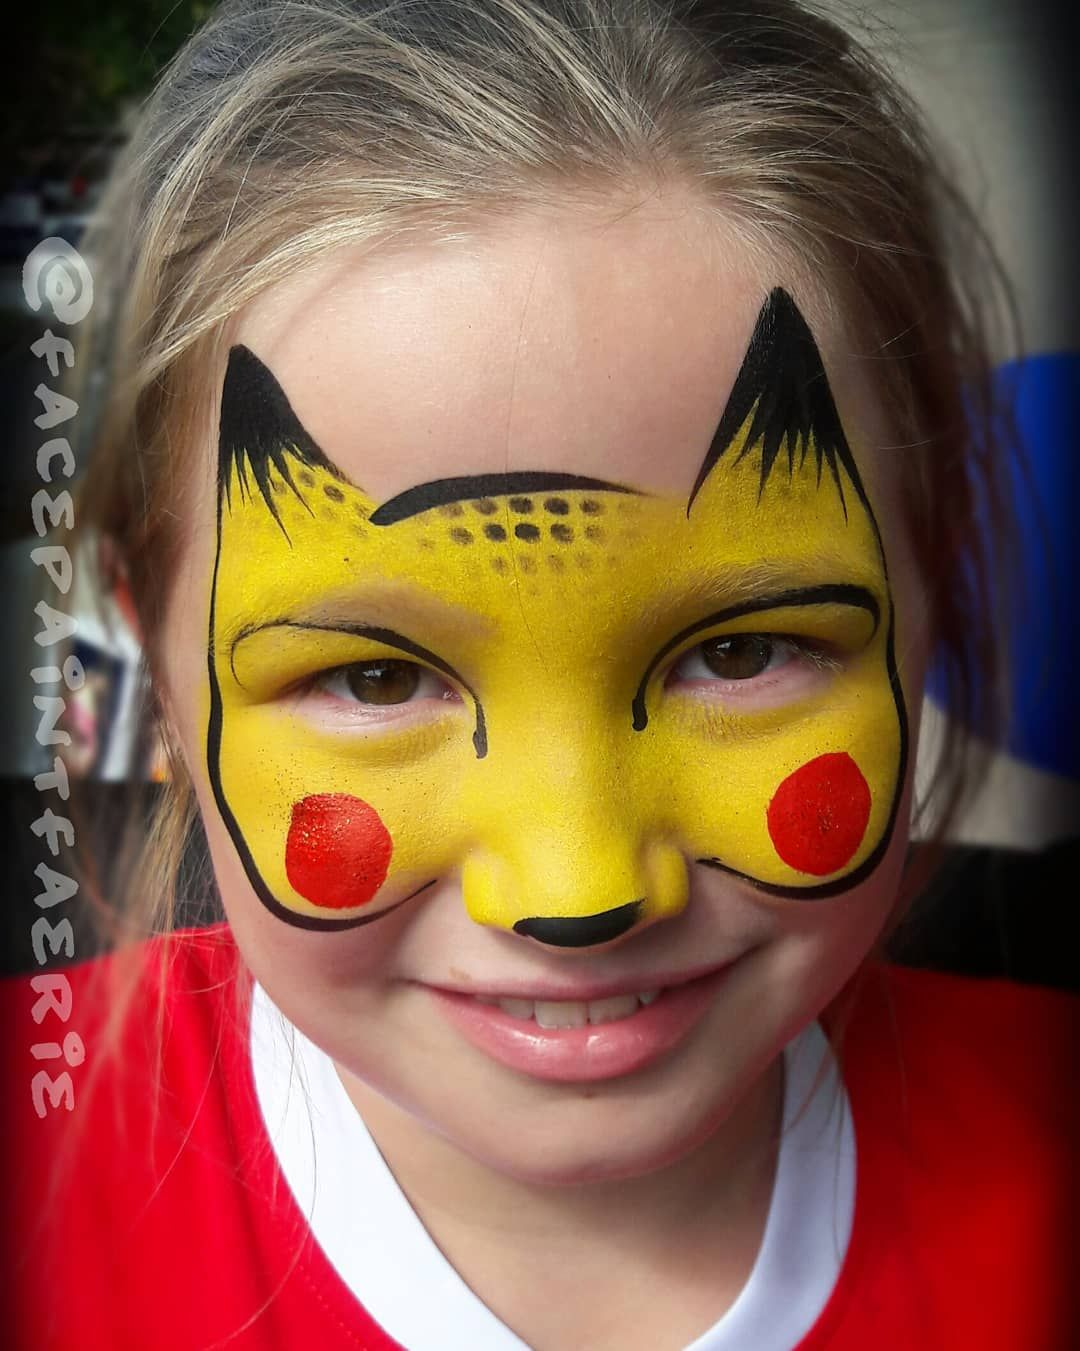 Kids Love When I Tell Them I Can Paint Pikachu Face Paint By Shawnafae Of Threewishe Pikachu Face Painting Superhero Face Painting Face Painting Halloween